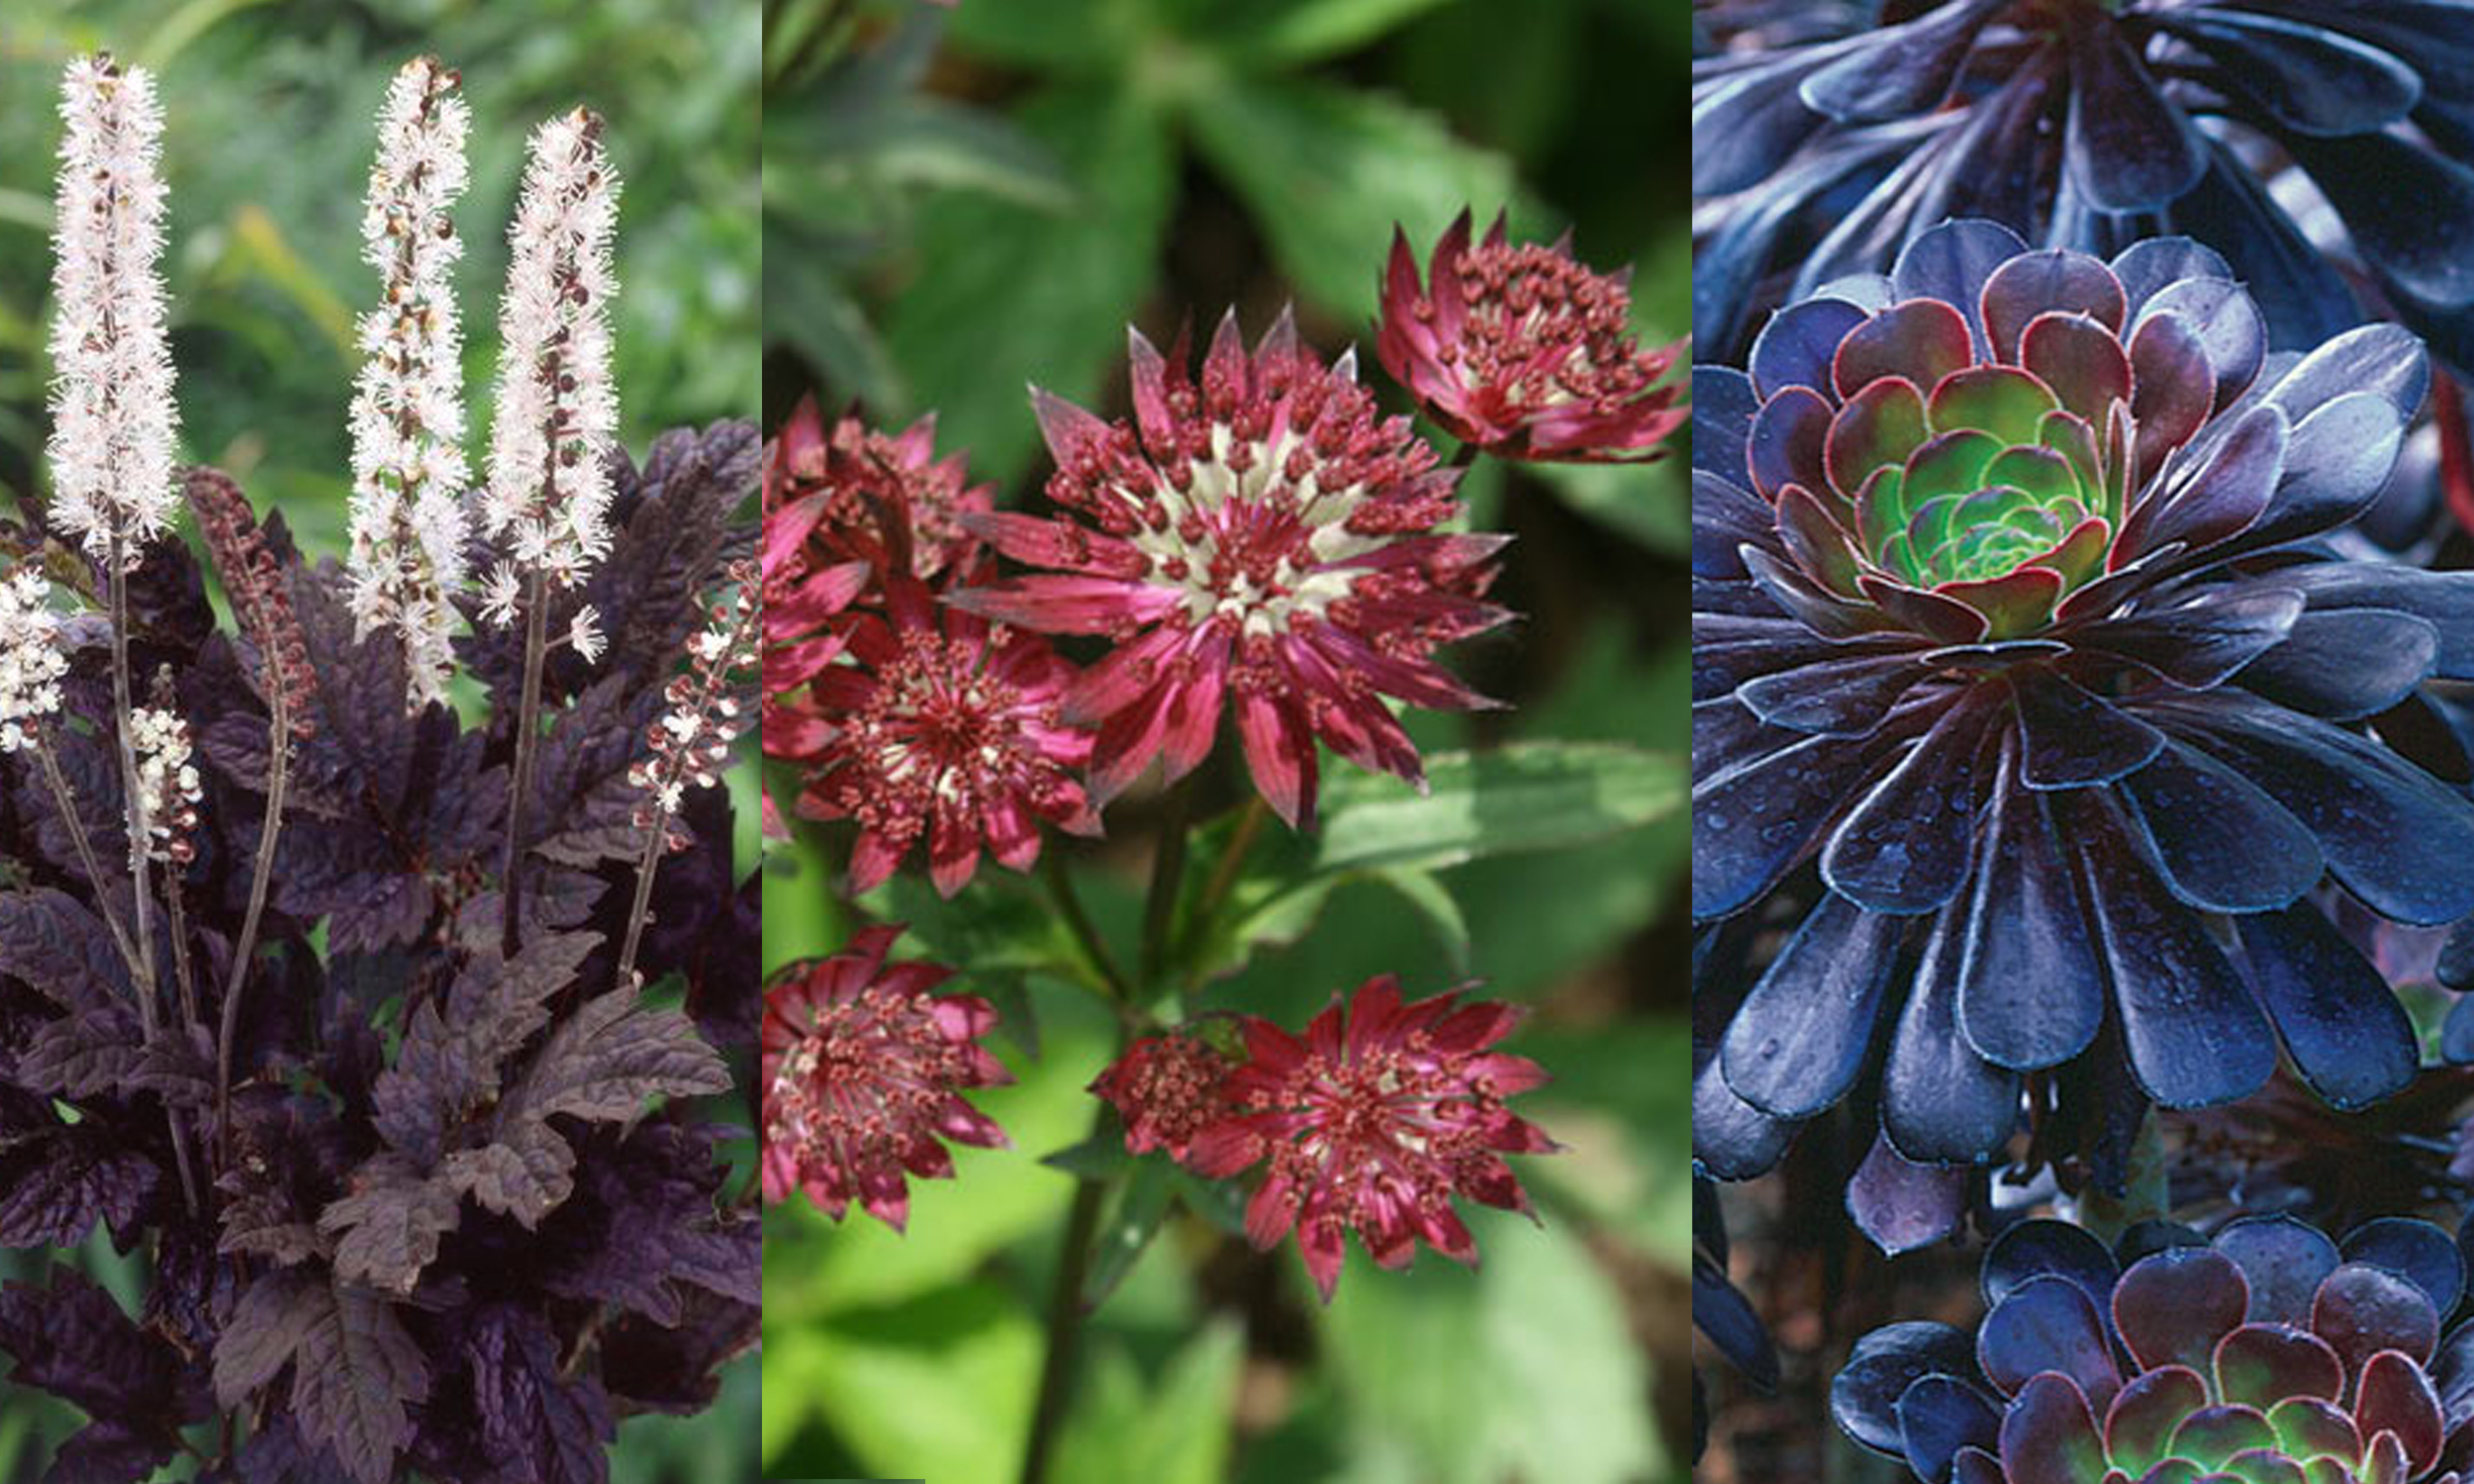 Cimicifuga racemosa  'Brunette',  Astrantia major  'Ruby Wedding',  Aeonium arboreum  'Atropurpureum'